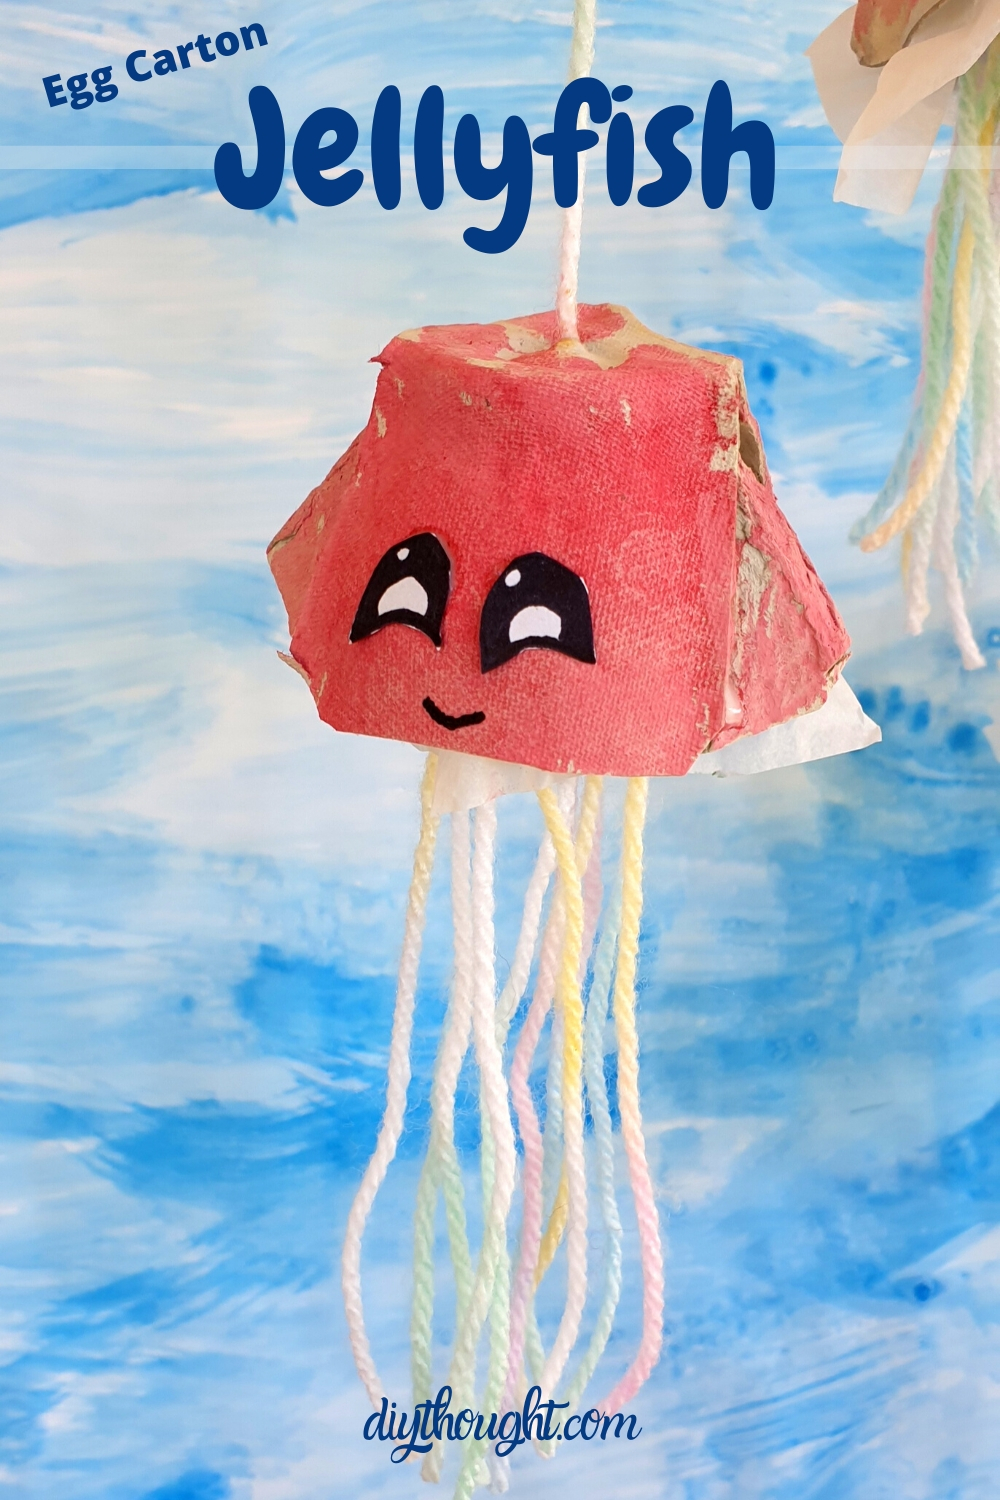 Egg carton jellyfish recycled craft